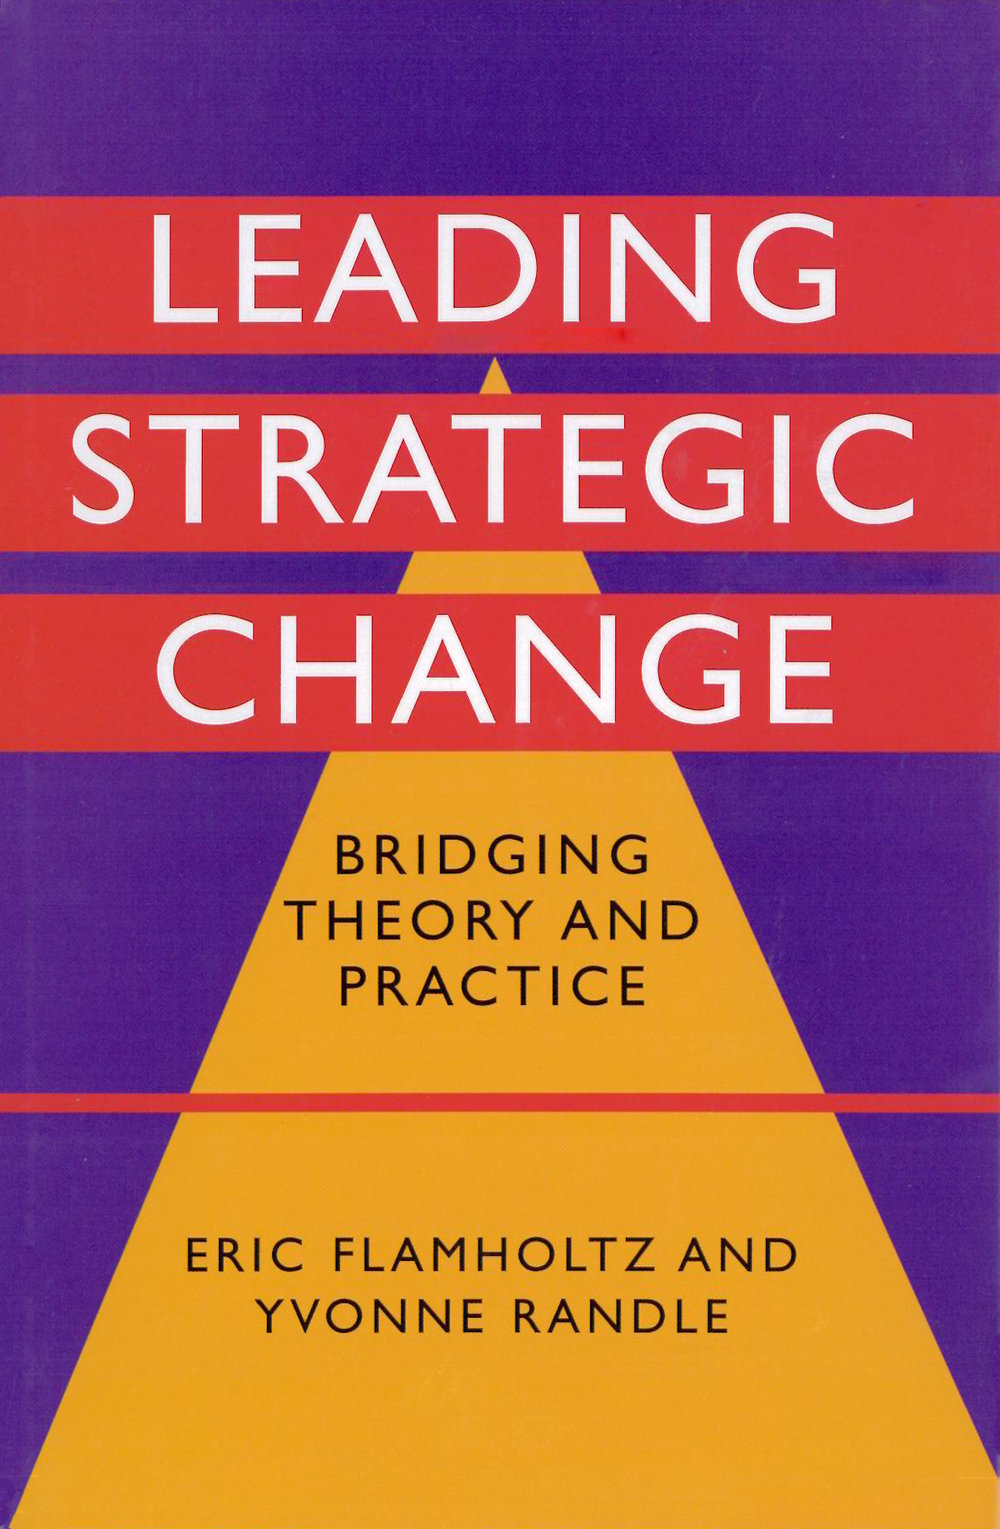 Leading Strategic Change[3].jpg